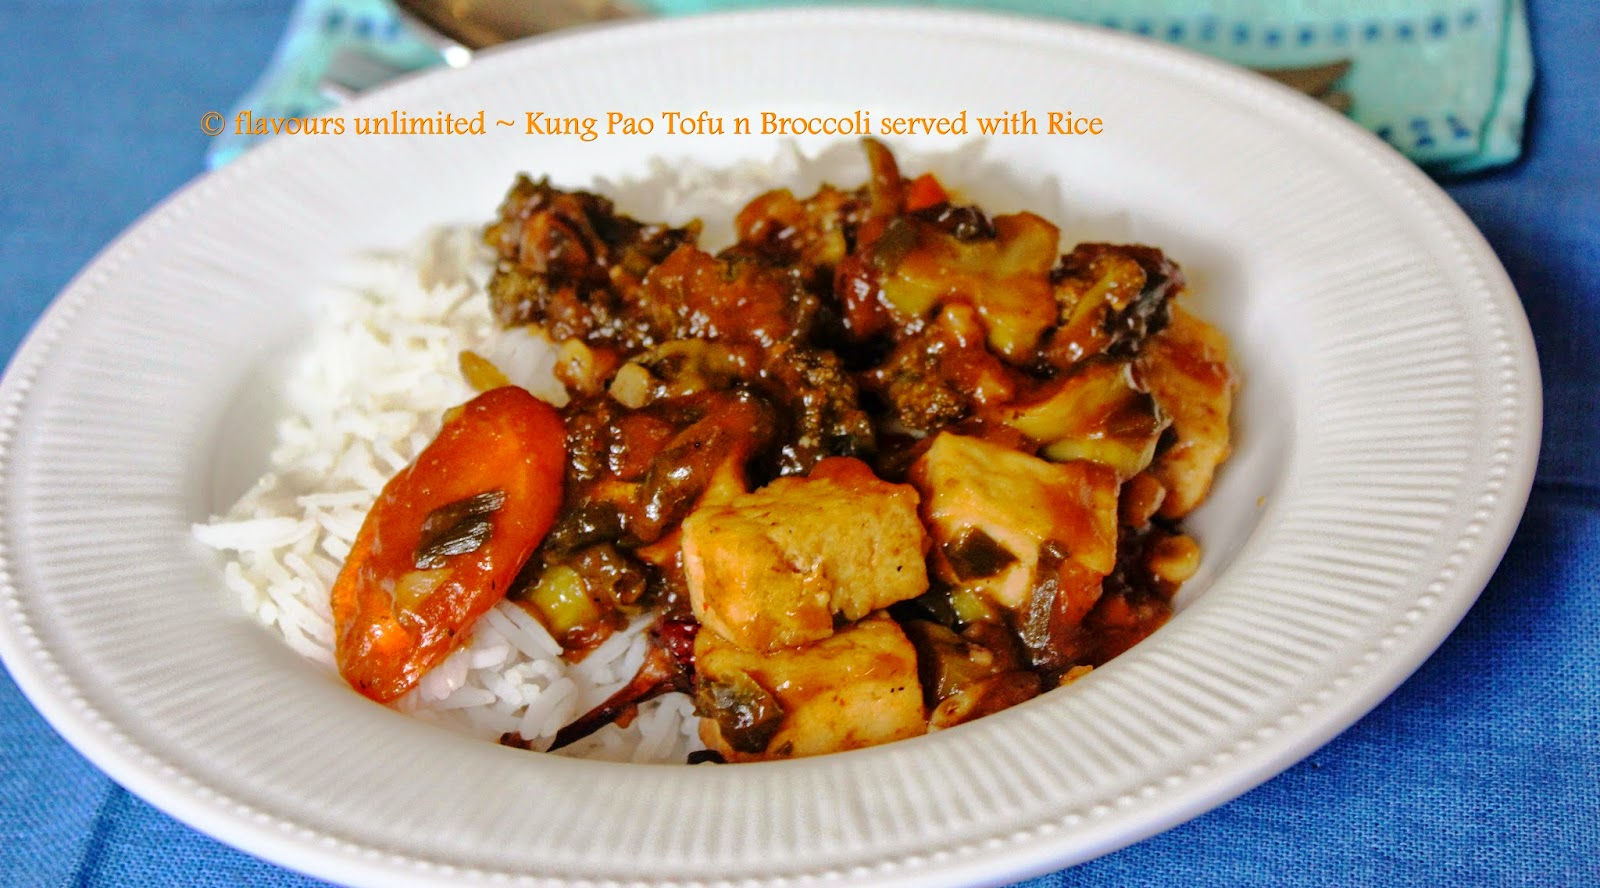 ... flavours to your Lives: Kung Pao Tofu n Broccoli Served with Rice